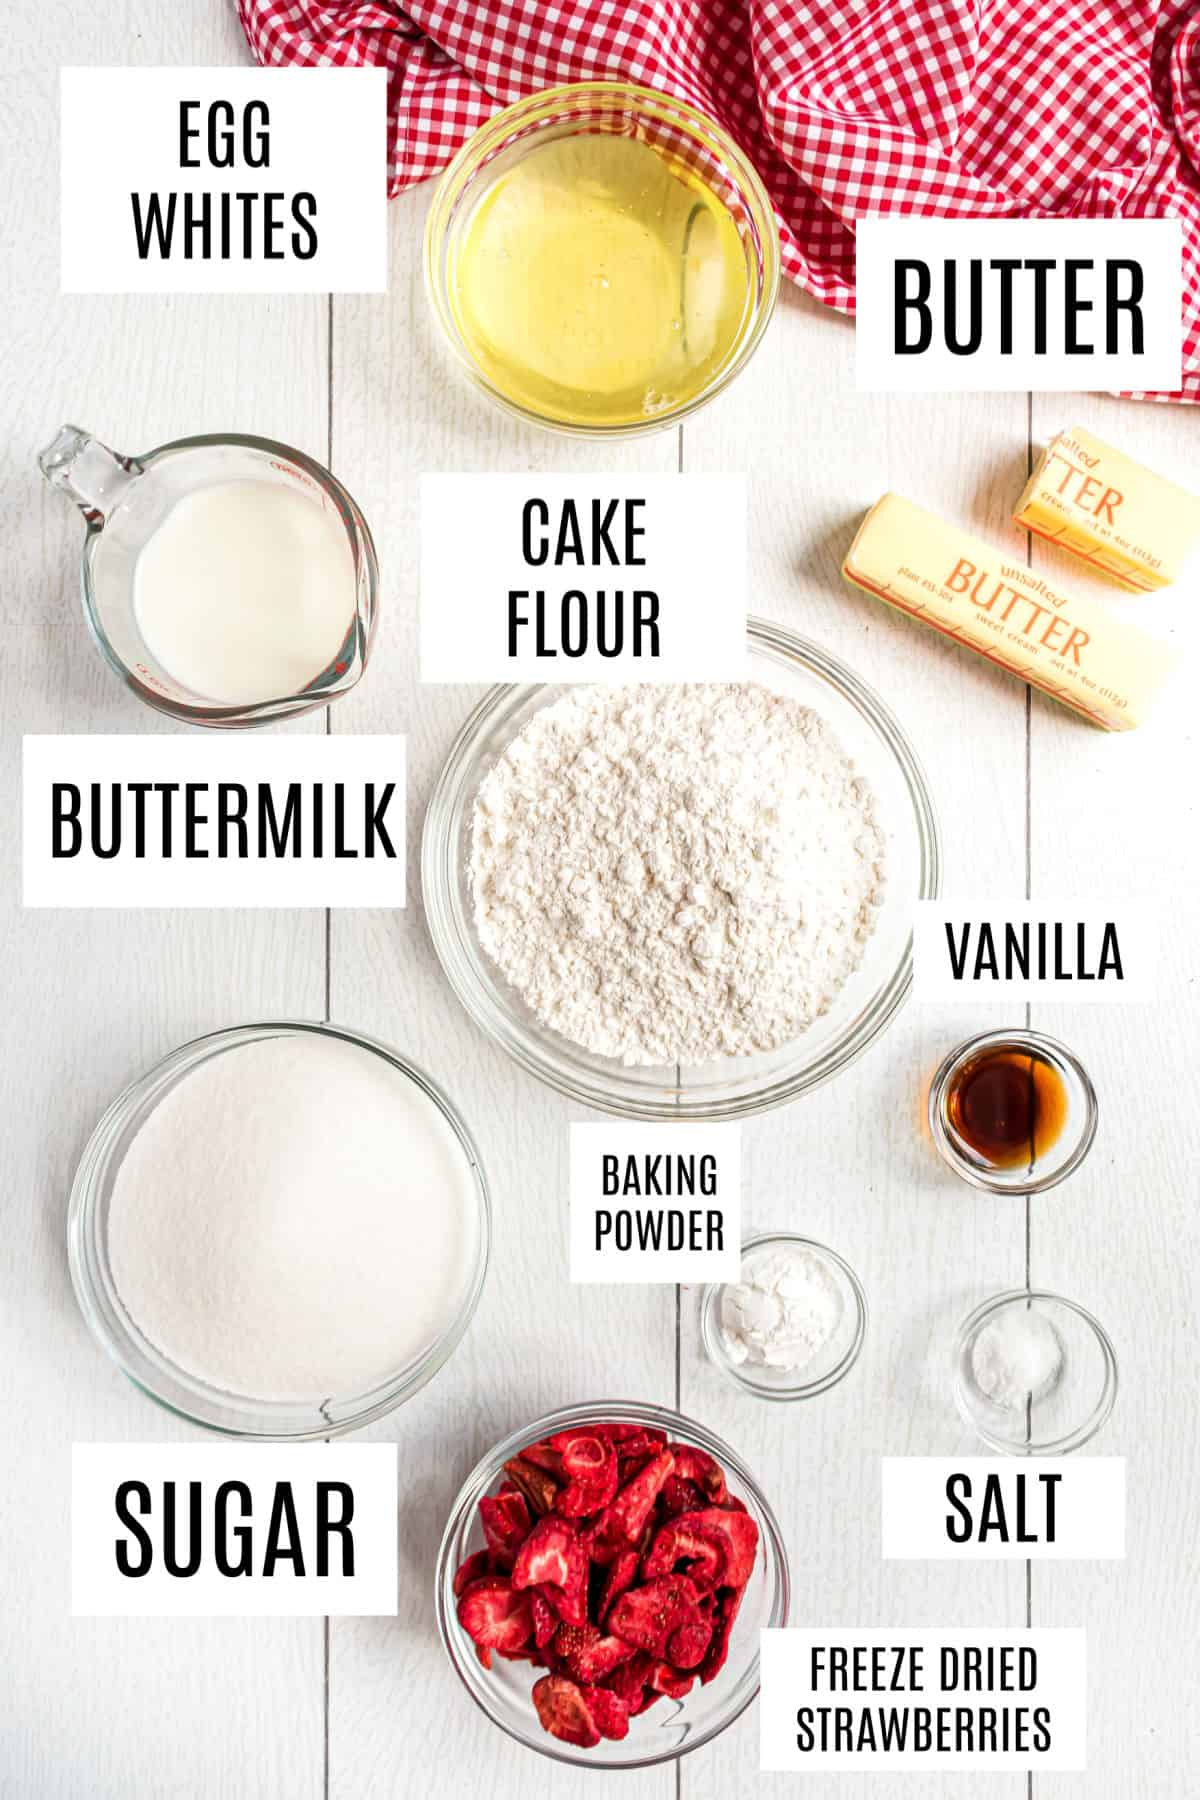 Ingredients needed for strawberry cake from scratch.